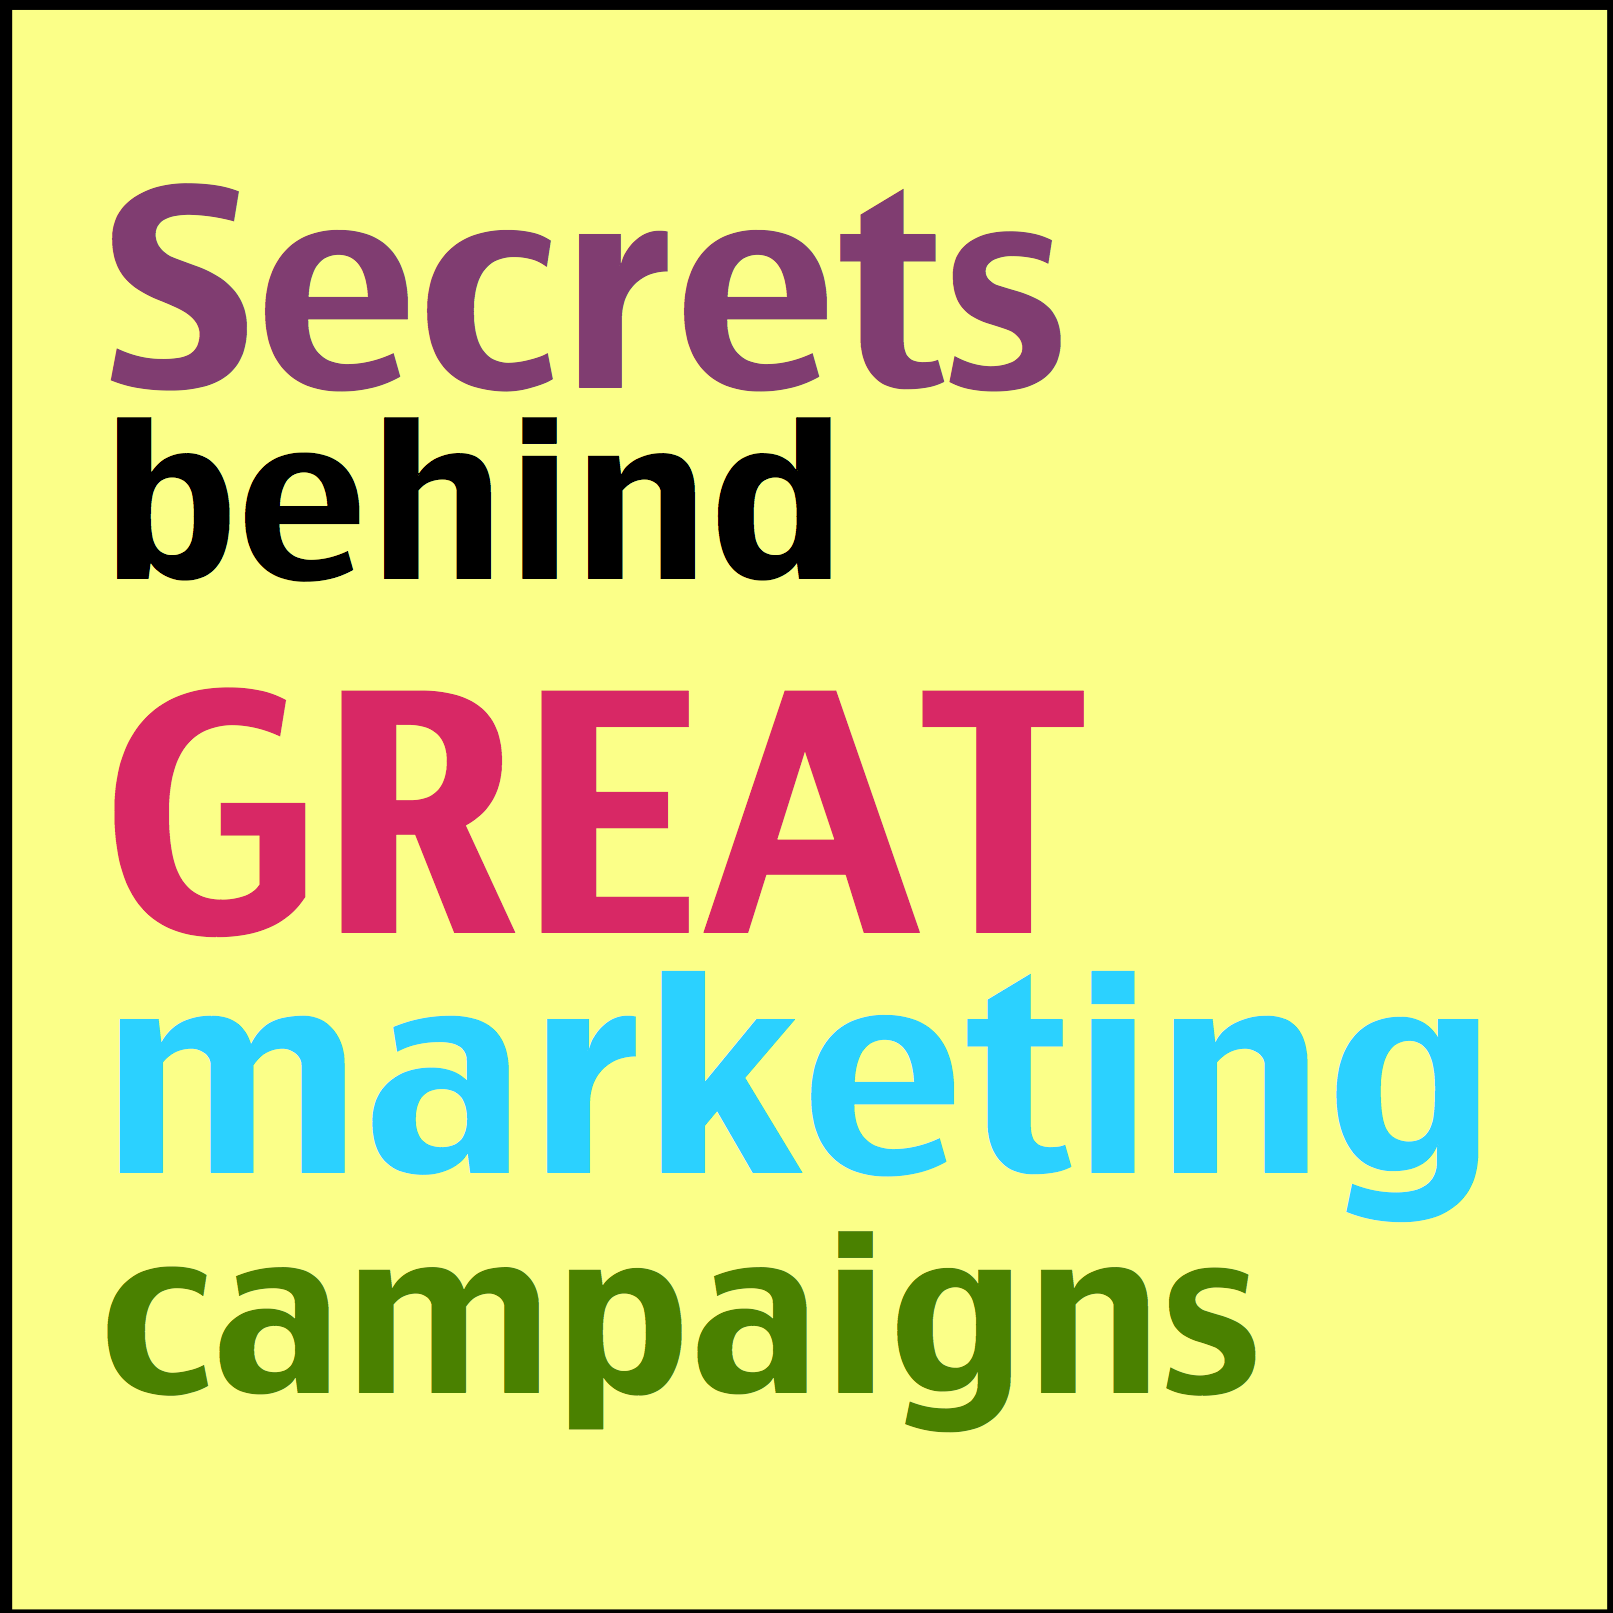 Secrets behind GREAT marketing campaigns